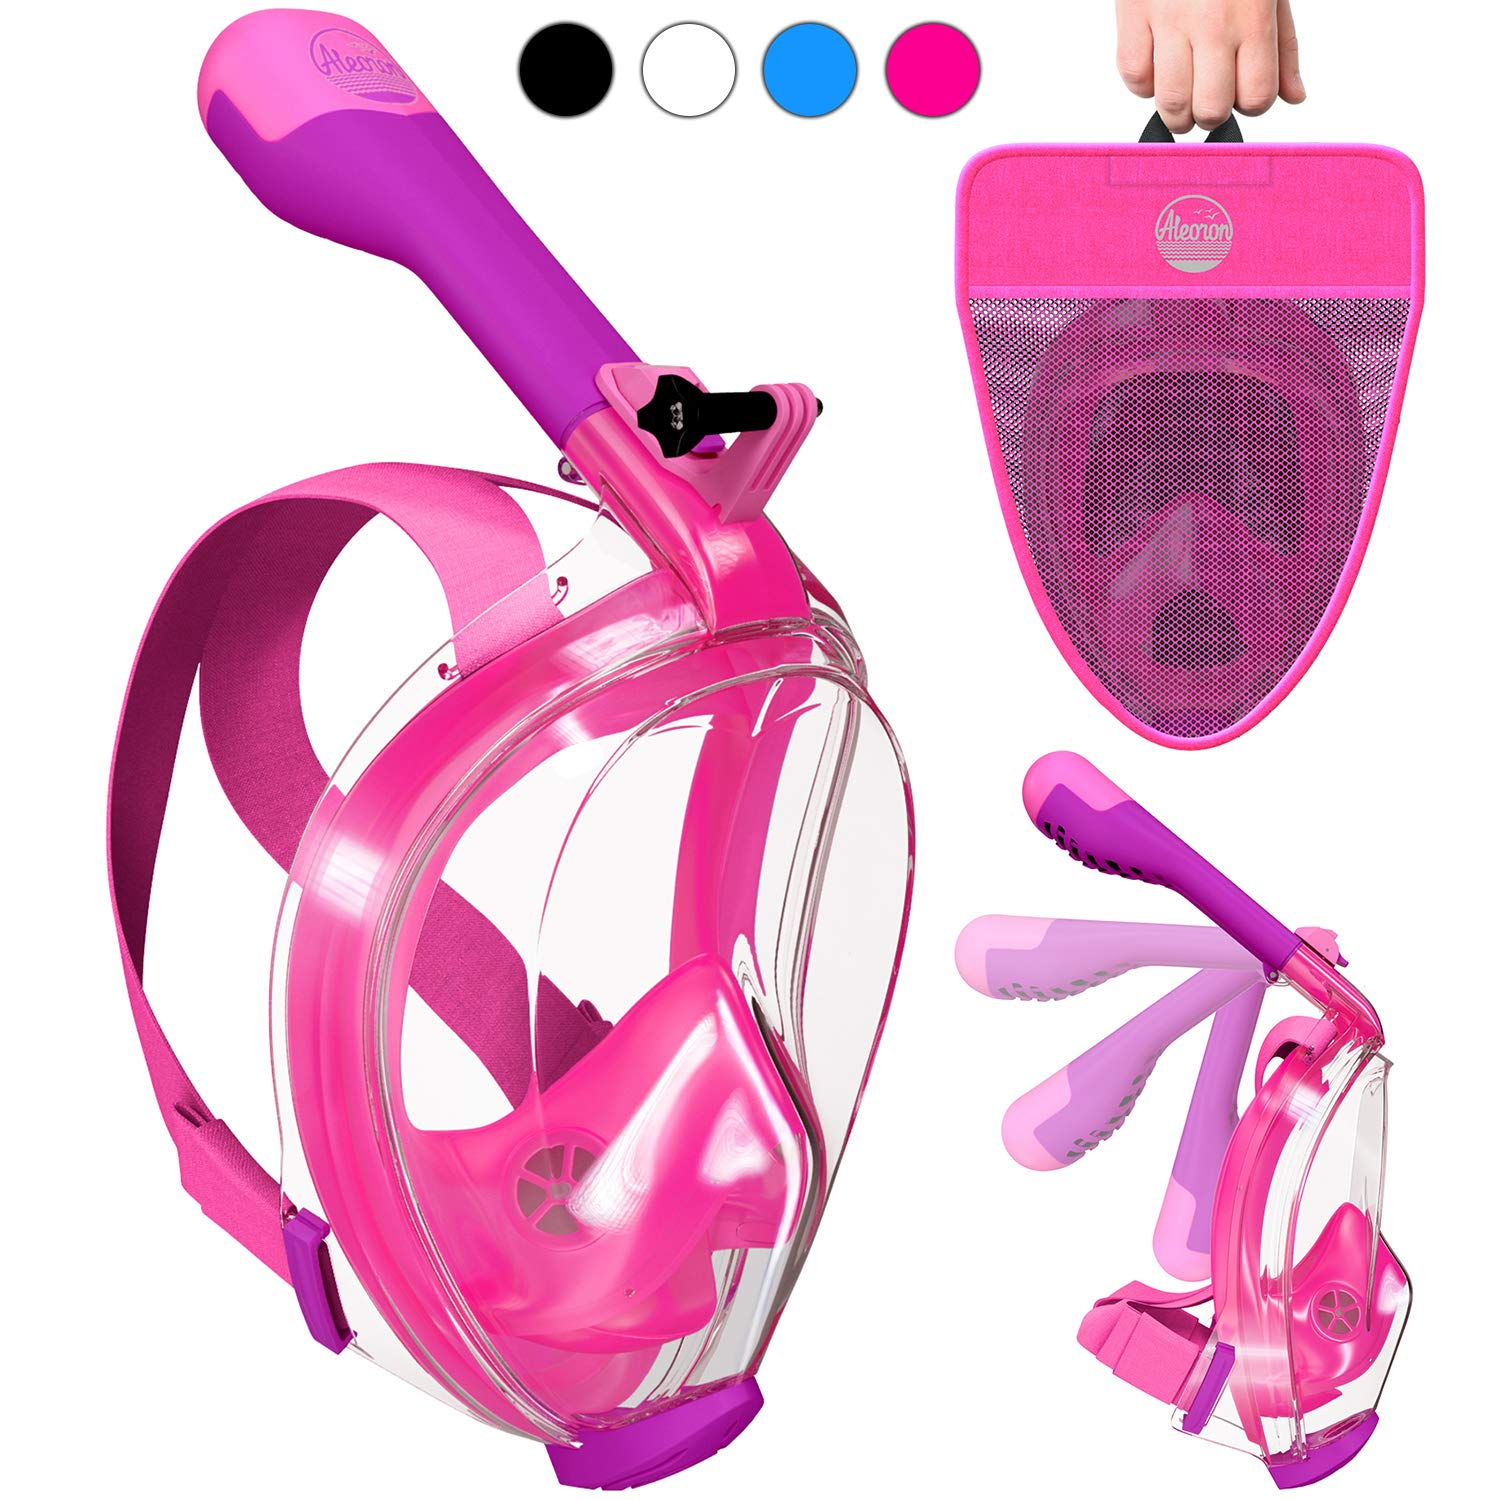 Aleoron - Foldable Full Face Snorkel Mask for Adults and Youth (Women & Men) - Anti Fog Full Face Snorkeling Mask with Action Camera Mount - Dive Mask UV Panoramic 180 Seaview Diving Mask Set by Aleoron